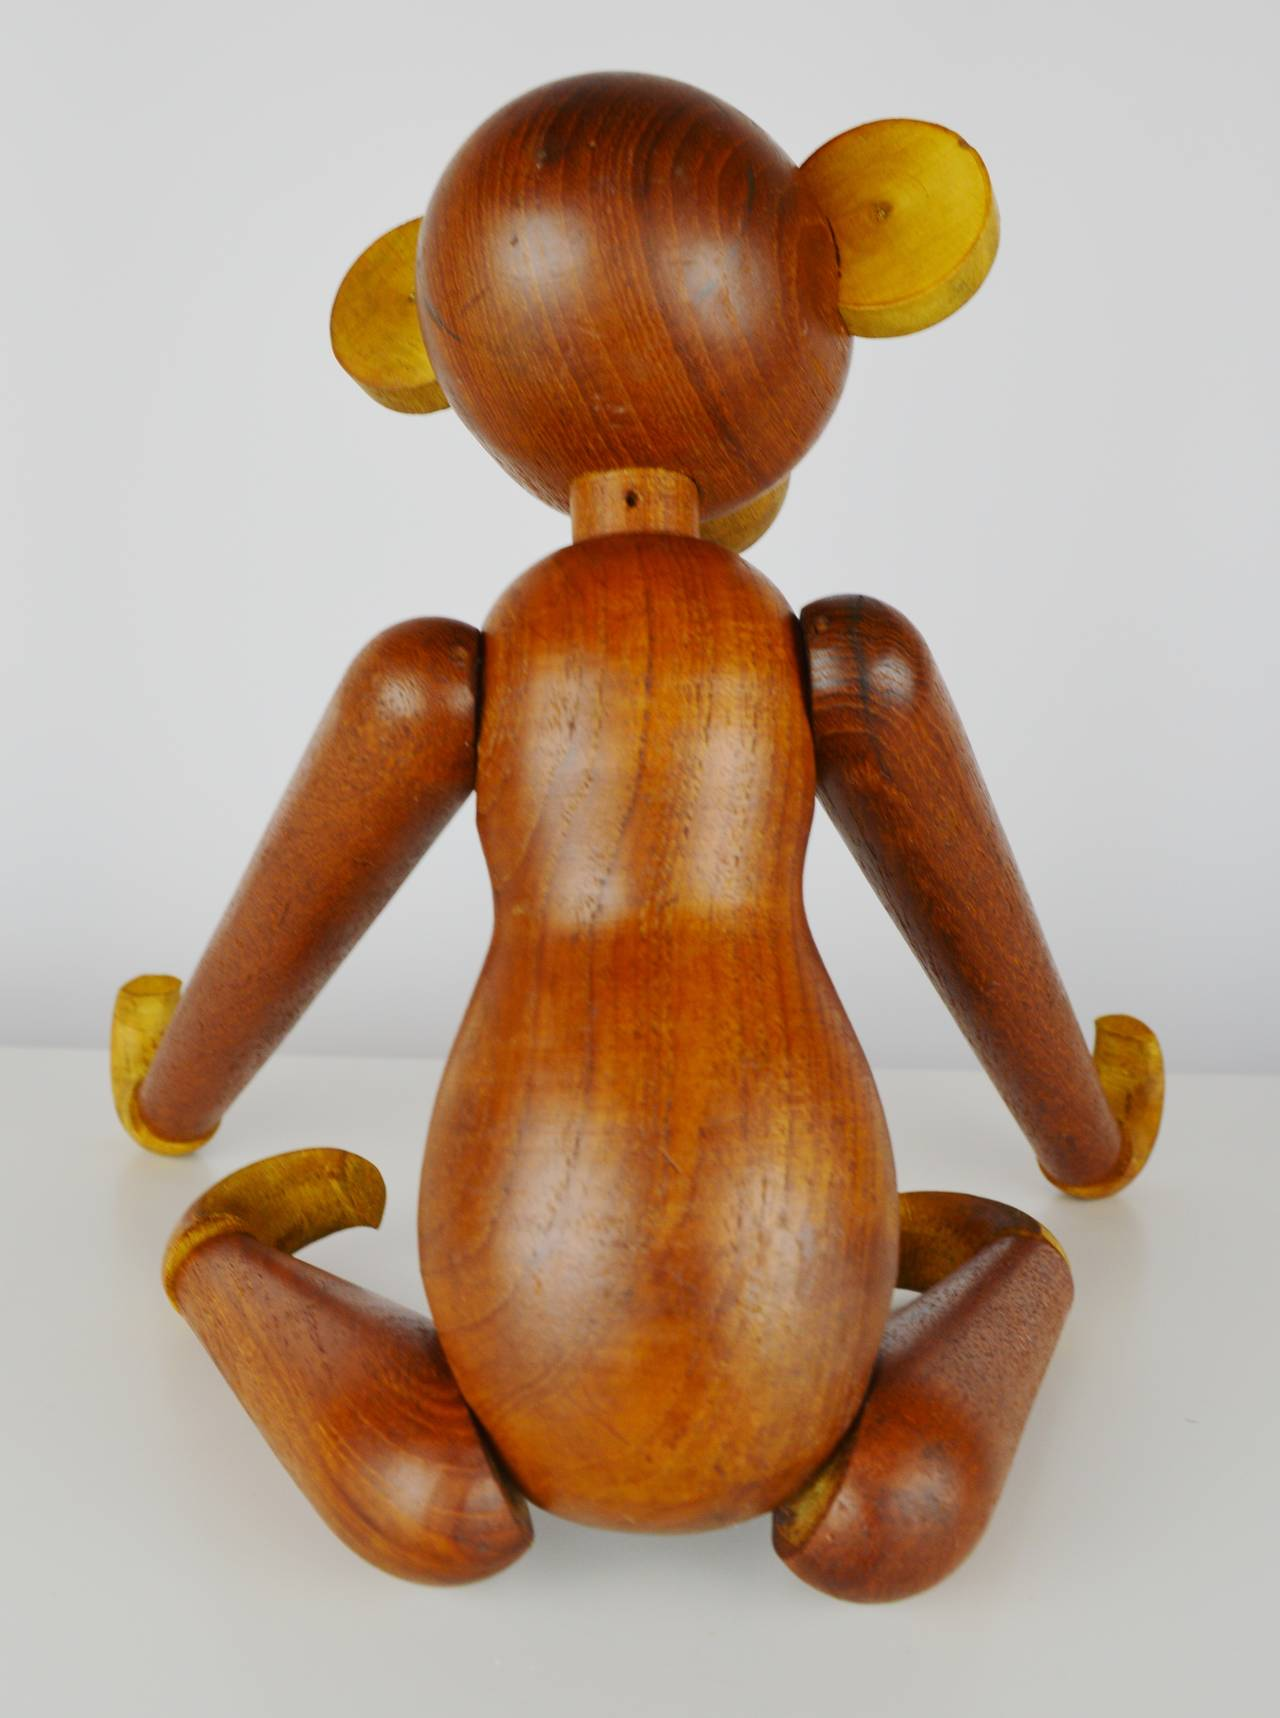 Pair of Vintage Articulated Monkeys in Teak and Other Woods In Good Condition For Sale In New Westminster, British Columbia